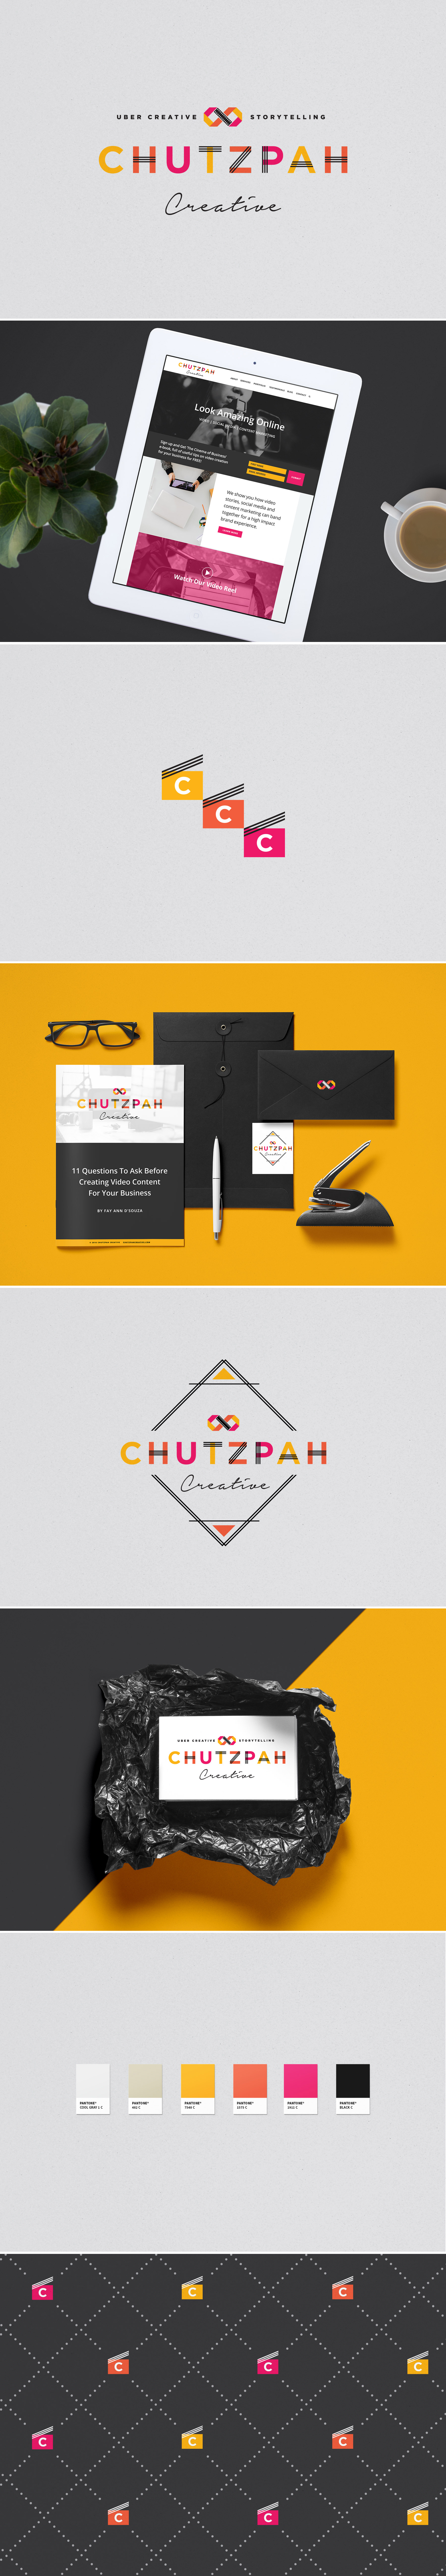 We Are Branch | Chutzpah Creative